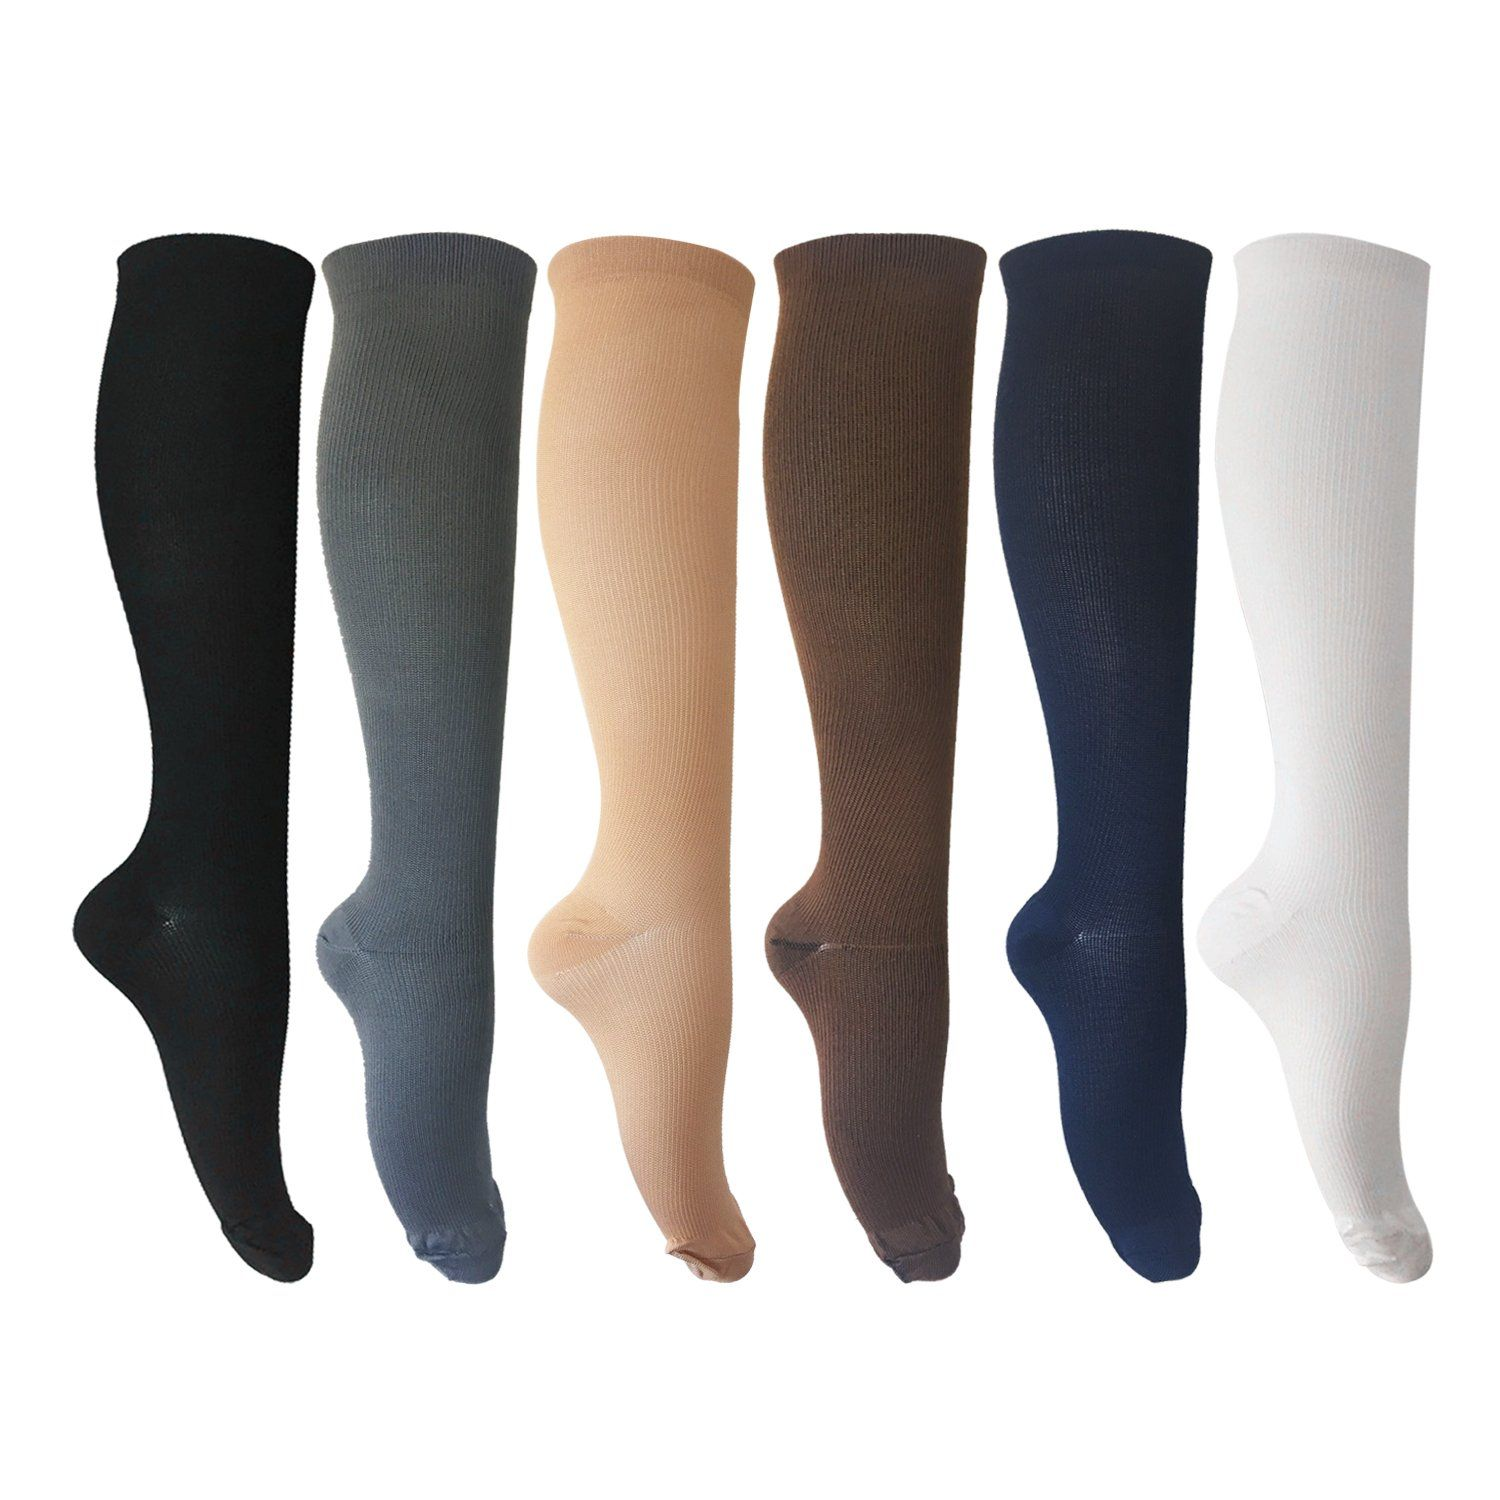 875aa858bc 6 Pairs of Compression Socks for Men and Women for Running, Nurses, Shin  Splints